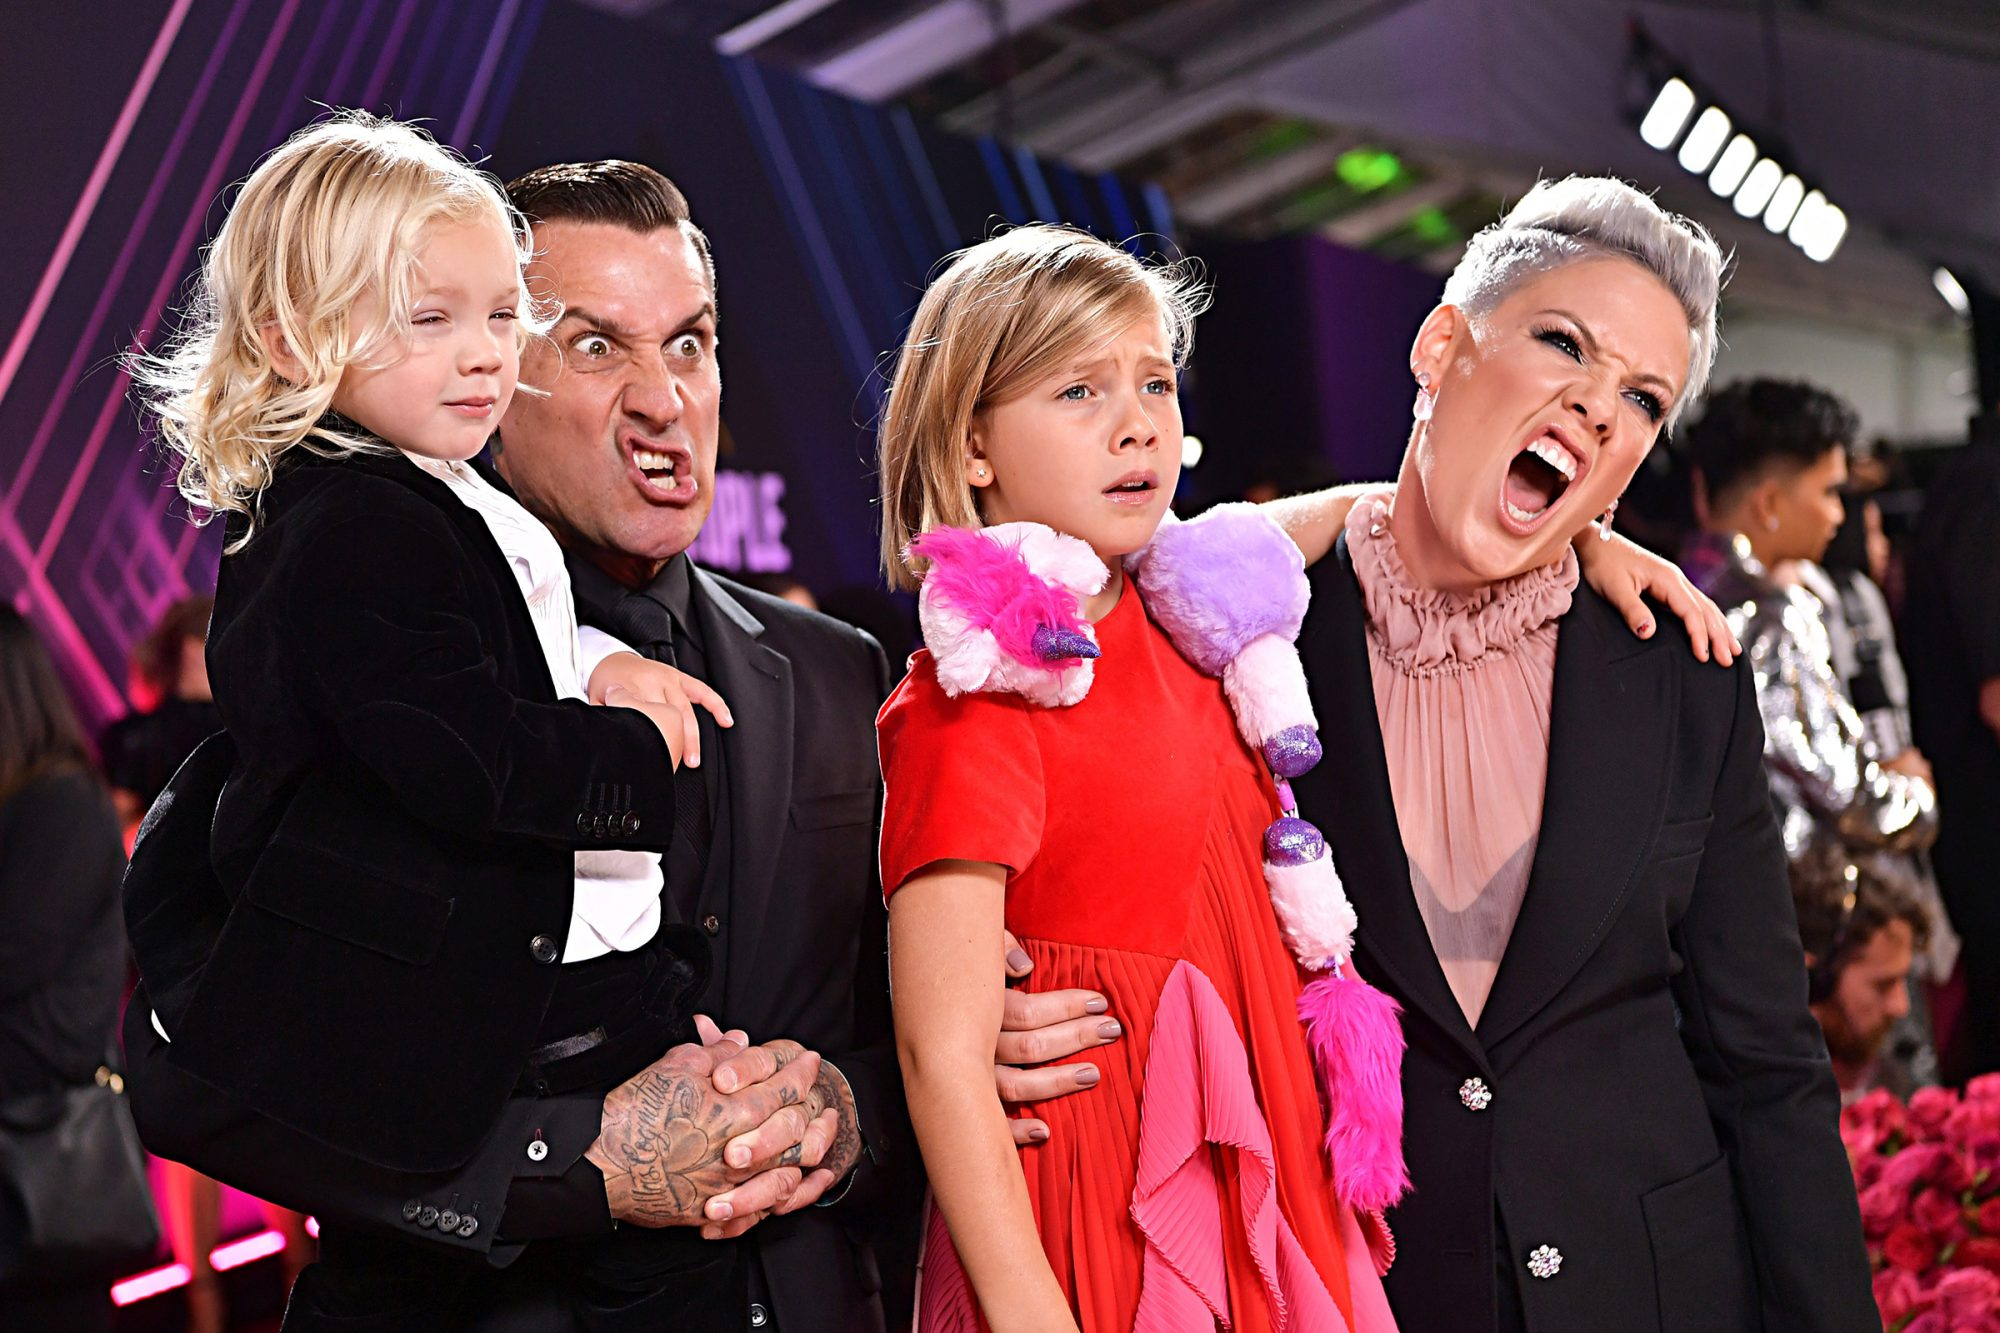 Jameson Hart, Carey Hart, Willow Sage Hart and Pink arrive to the 2019 E! People's Choice Awards held at the Barker Hangar on November 10, 2019